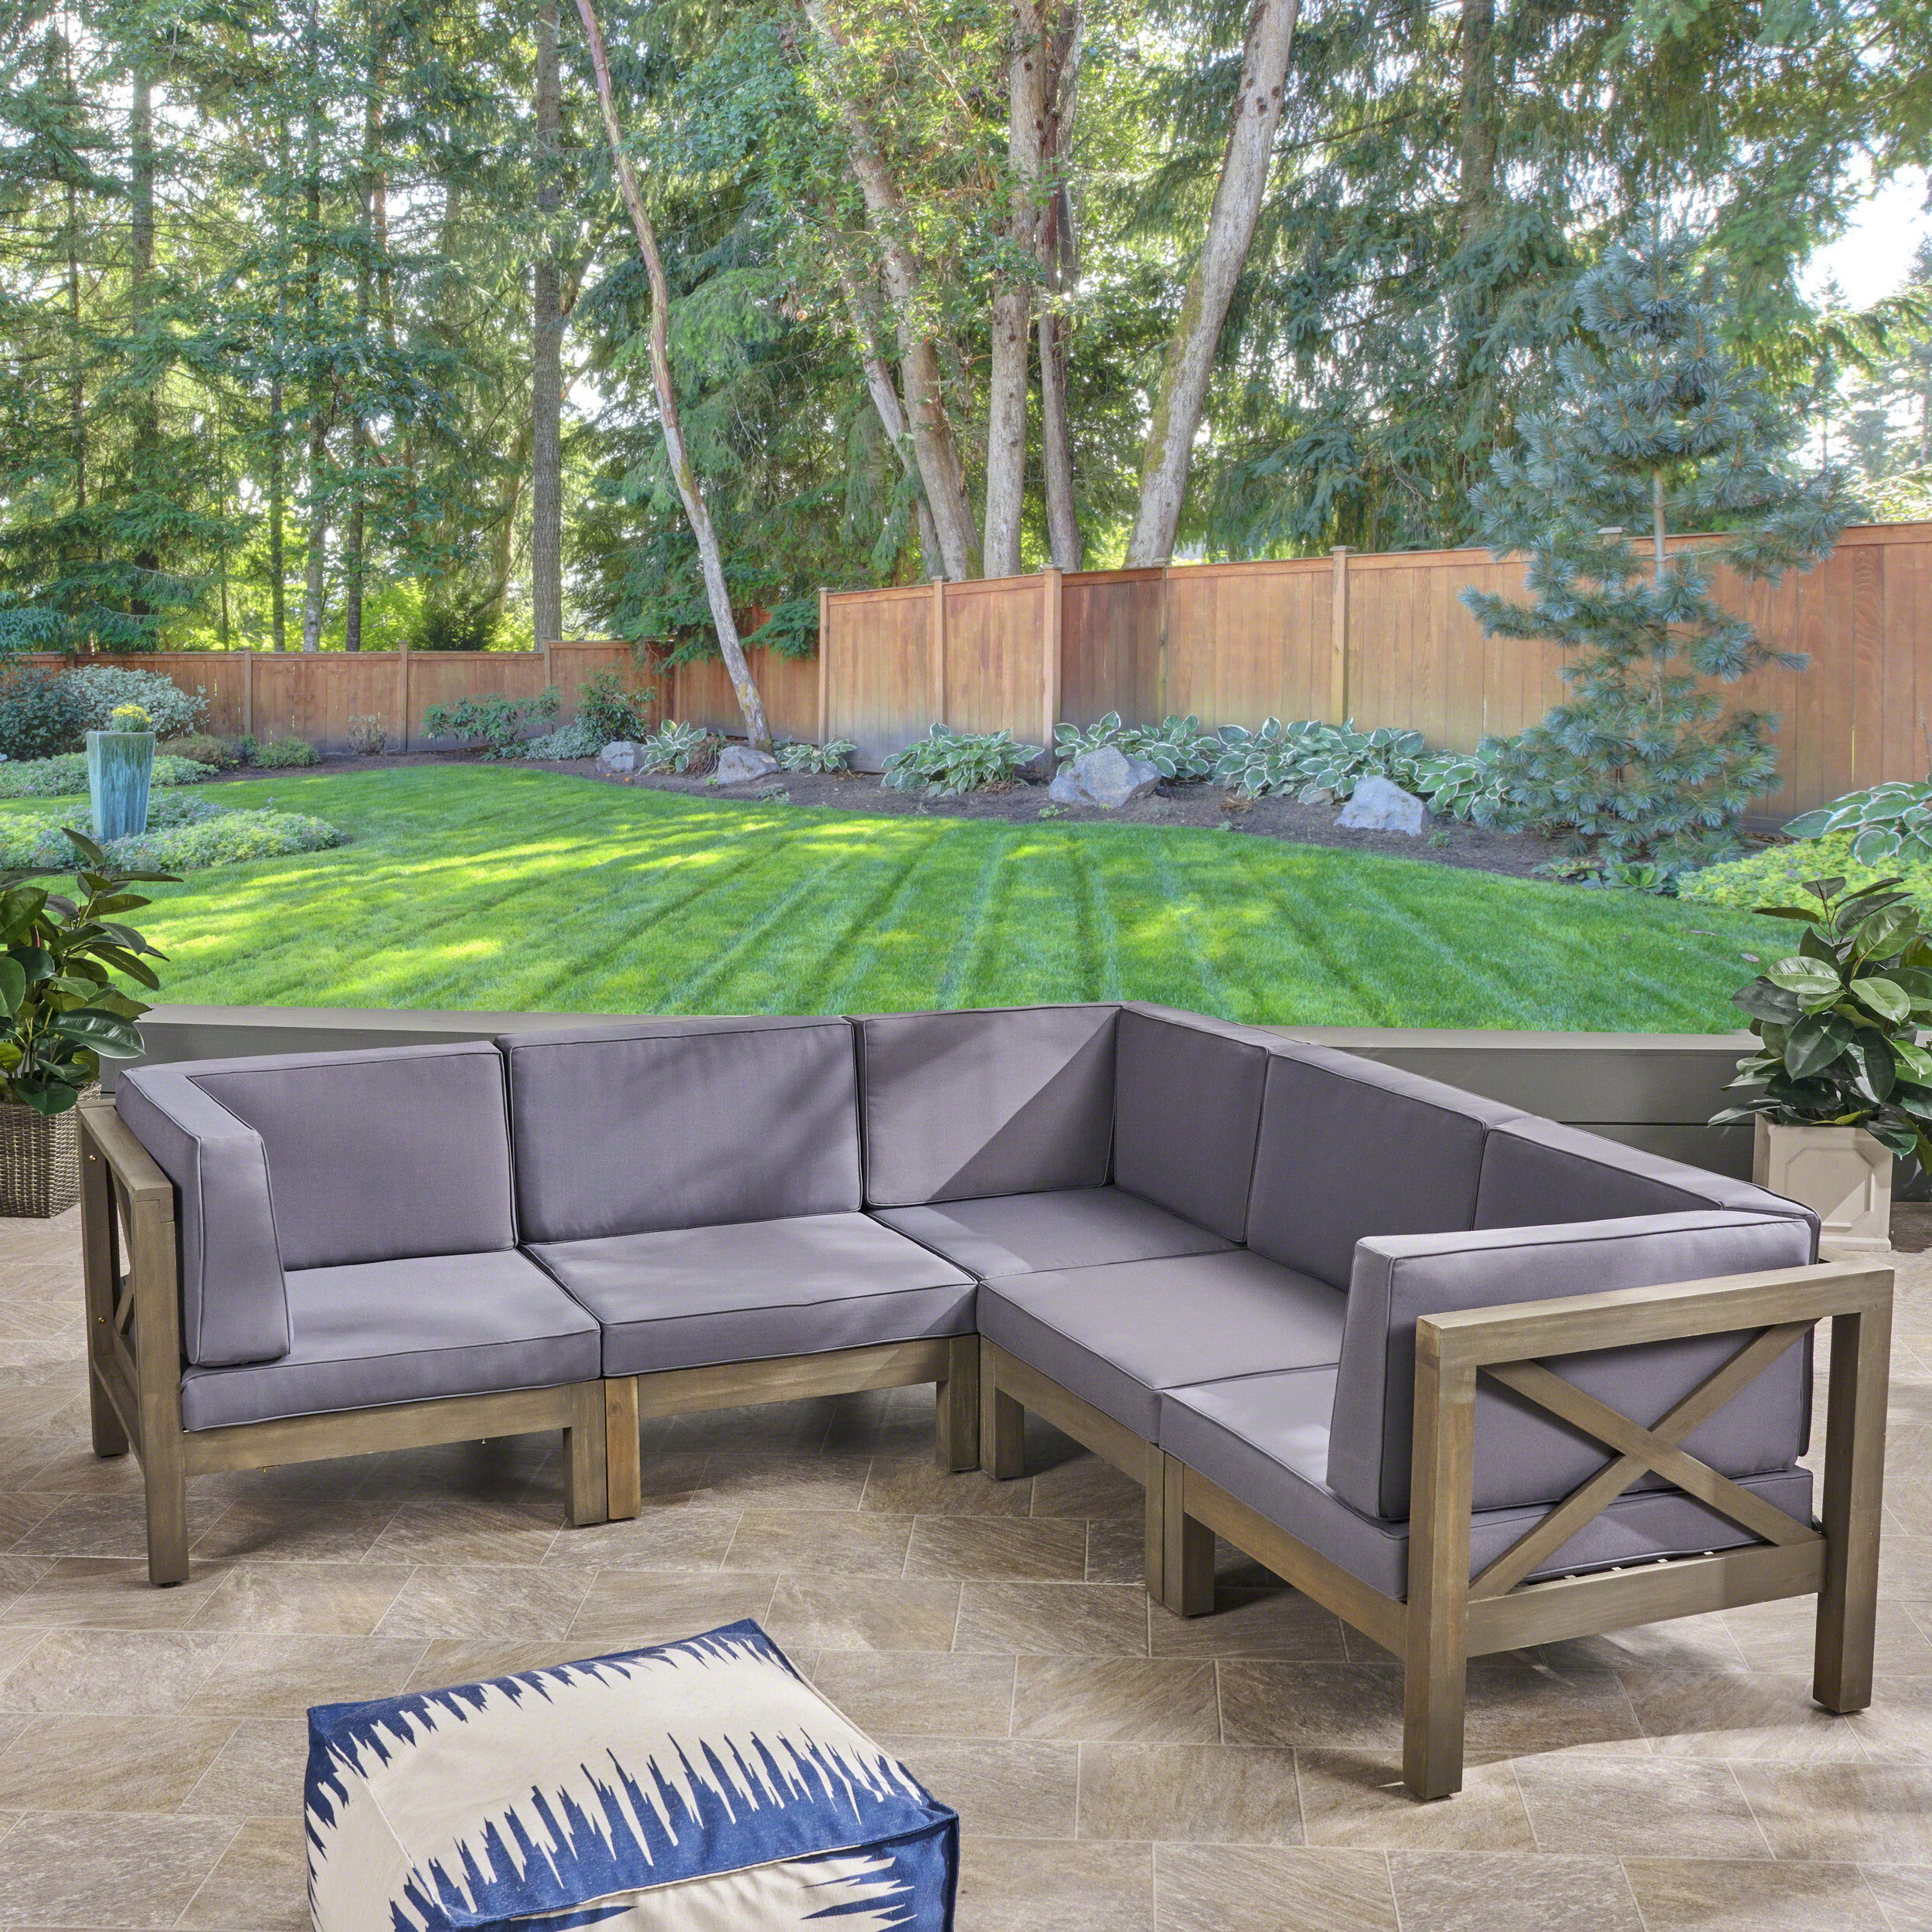 Antonia Teak Patio Sectionals With Cushions Pertaining To Famous Ellison Patio Sectional With Cushions (View 10 of 25)